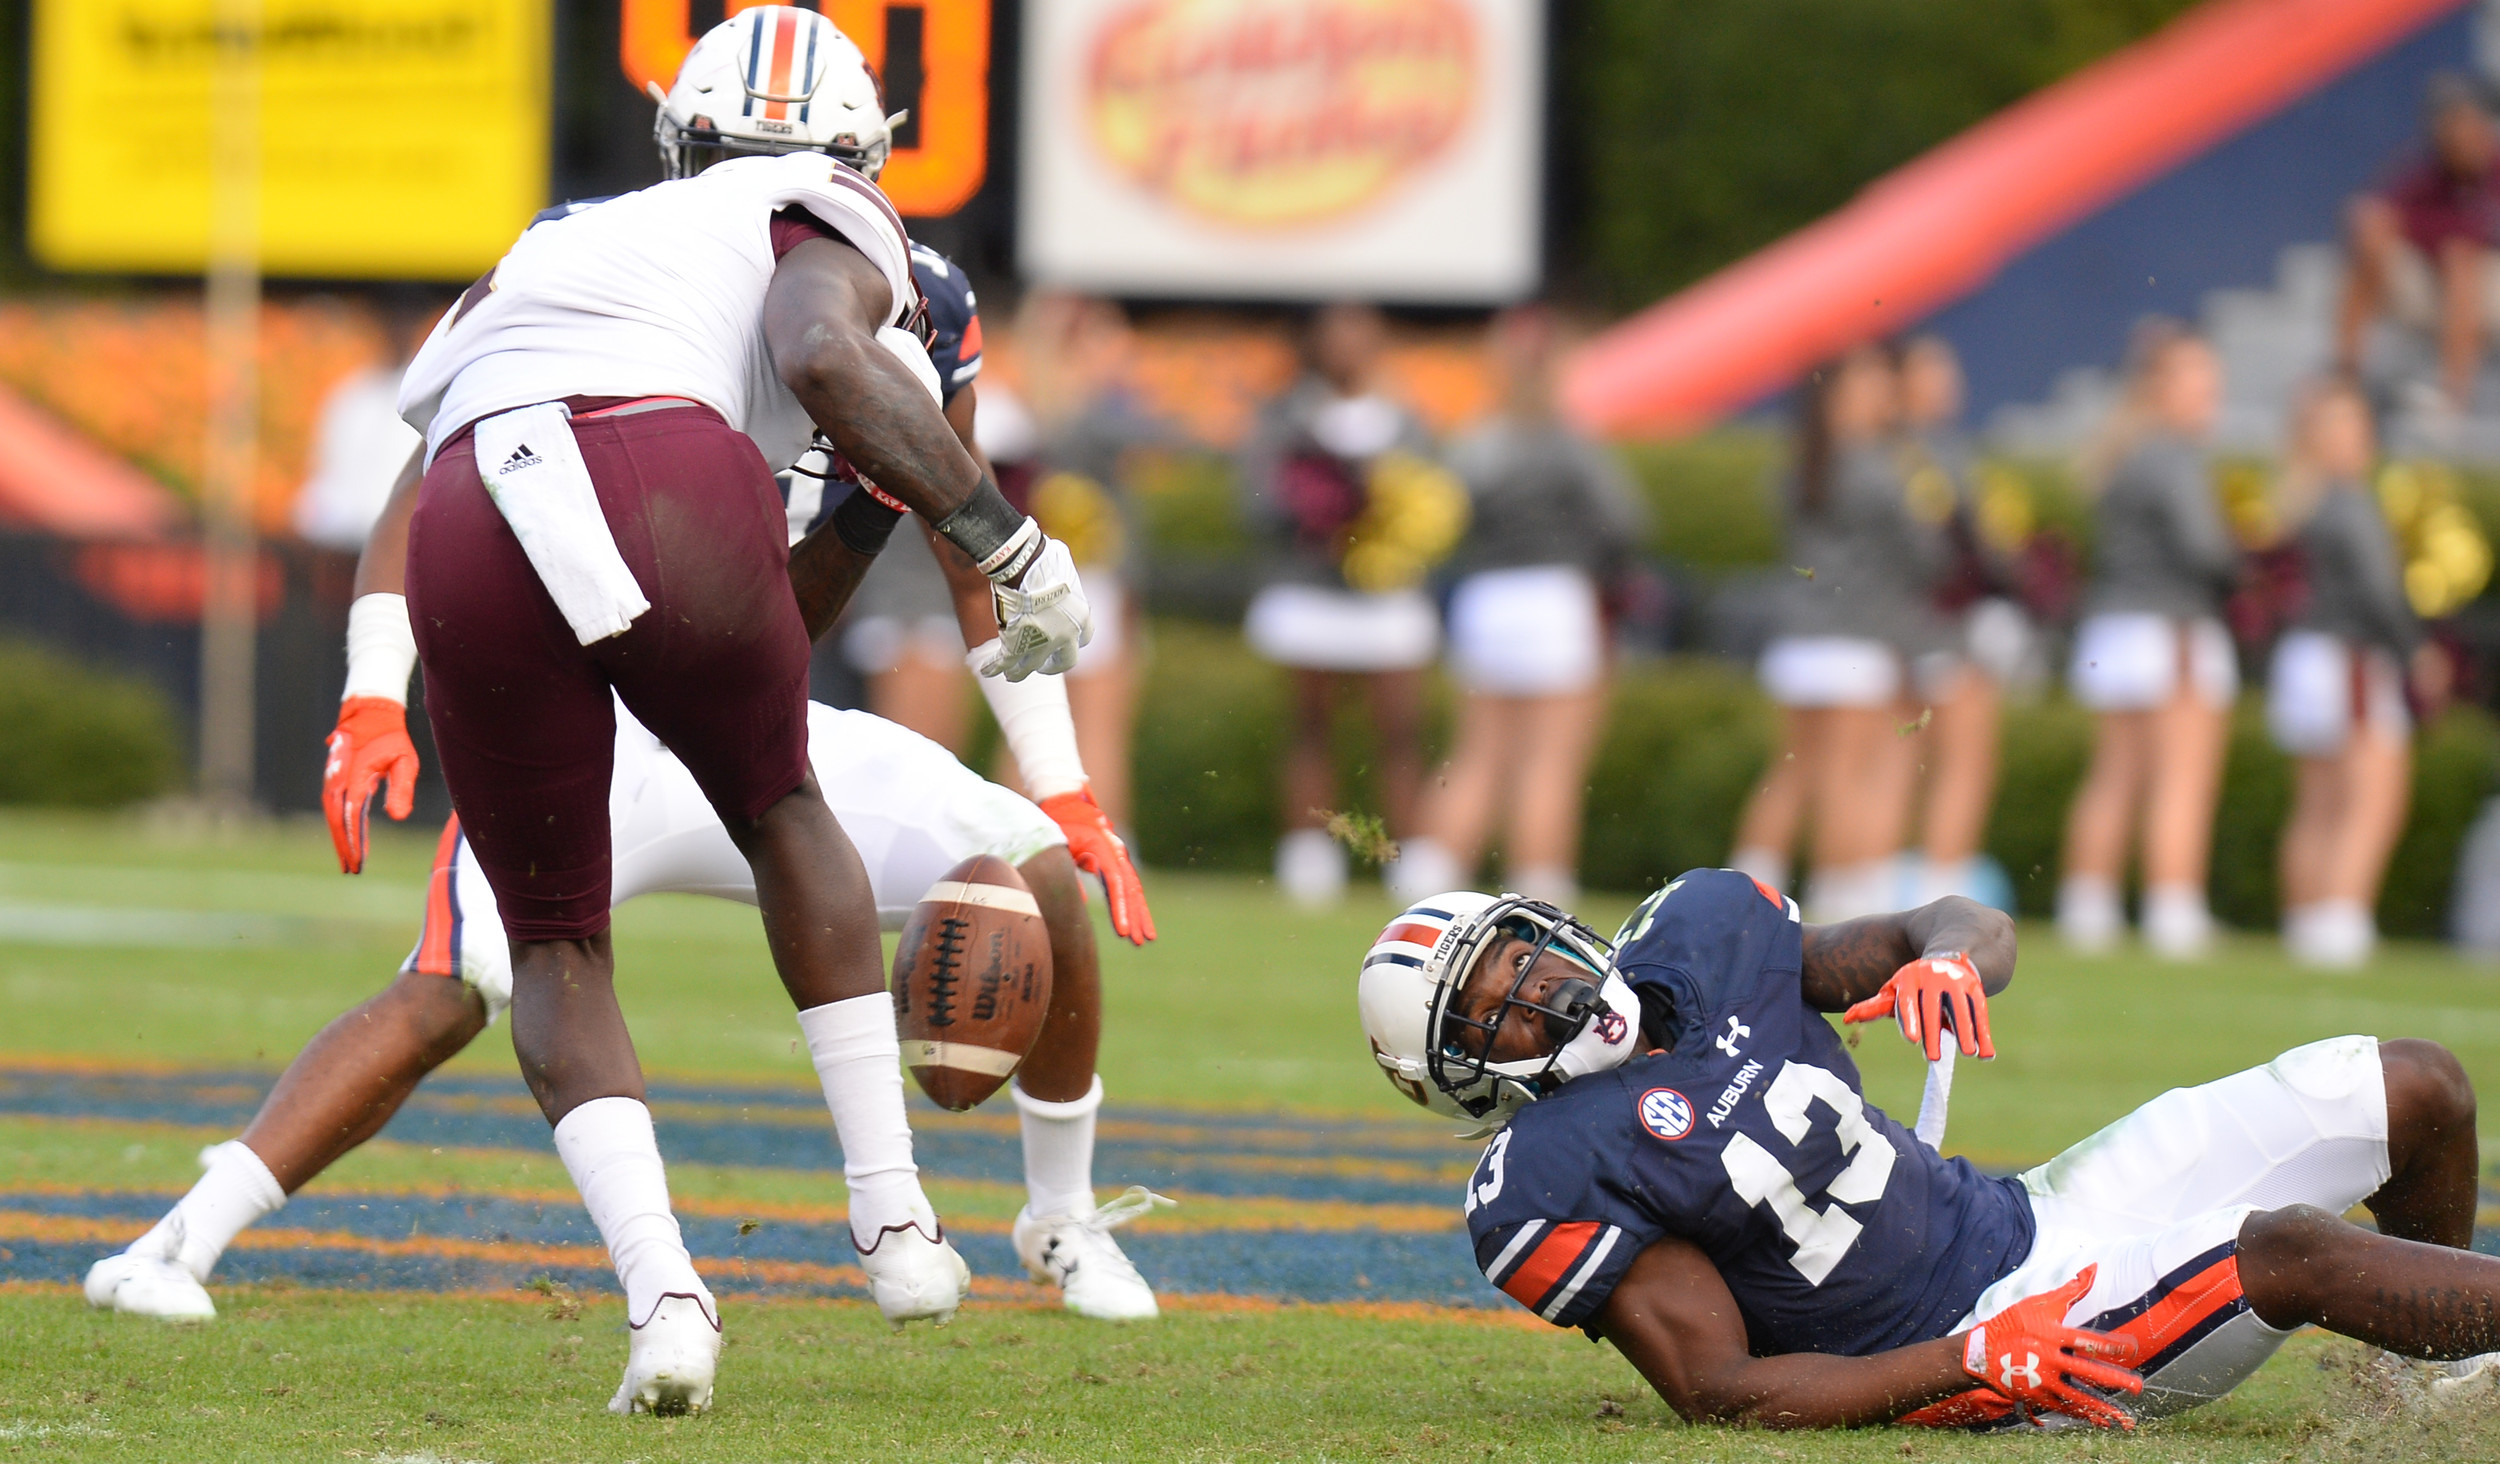 Louisiana Monroe Warhawks wide receiver Brian Williams (1) is stripped of the football by Auburn Tigers defensive back Javaris Davis (13) during the second half of Saturday's game, at Jordan-Hare Stadium.